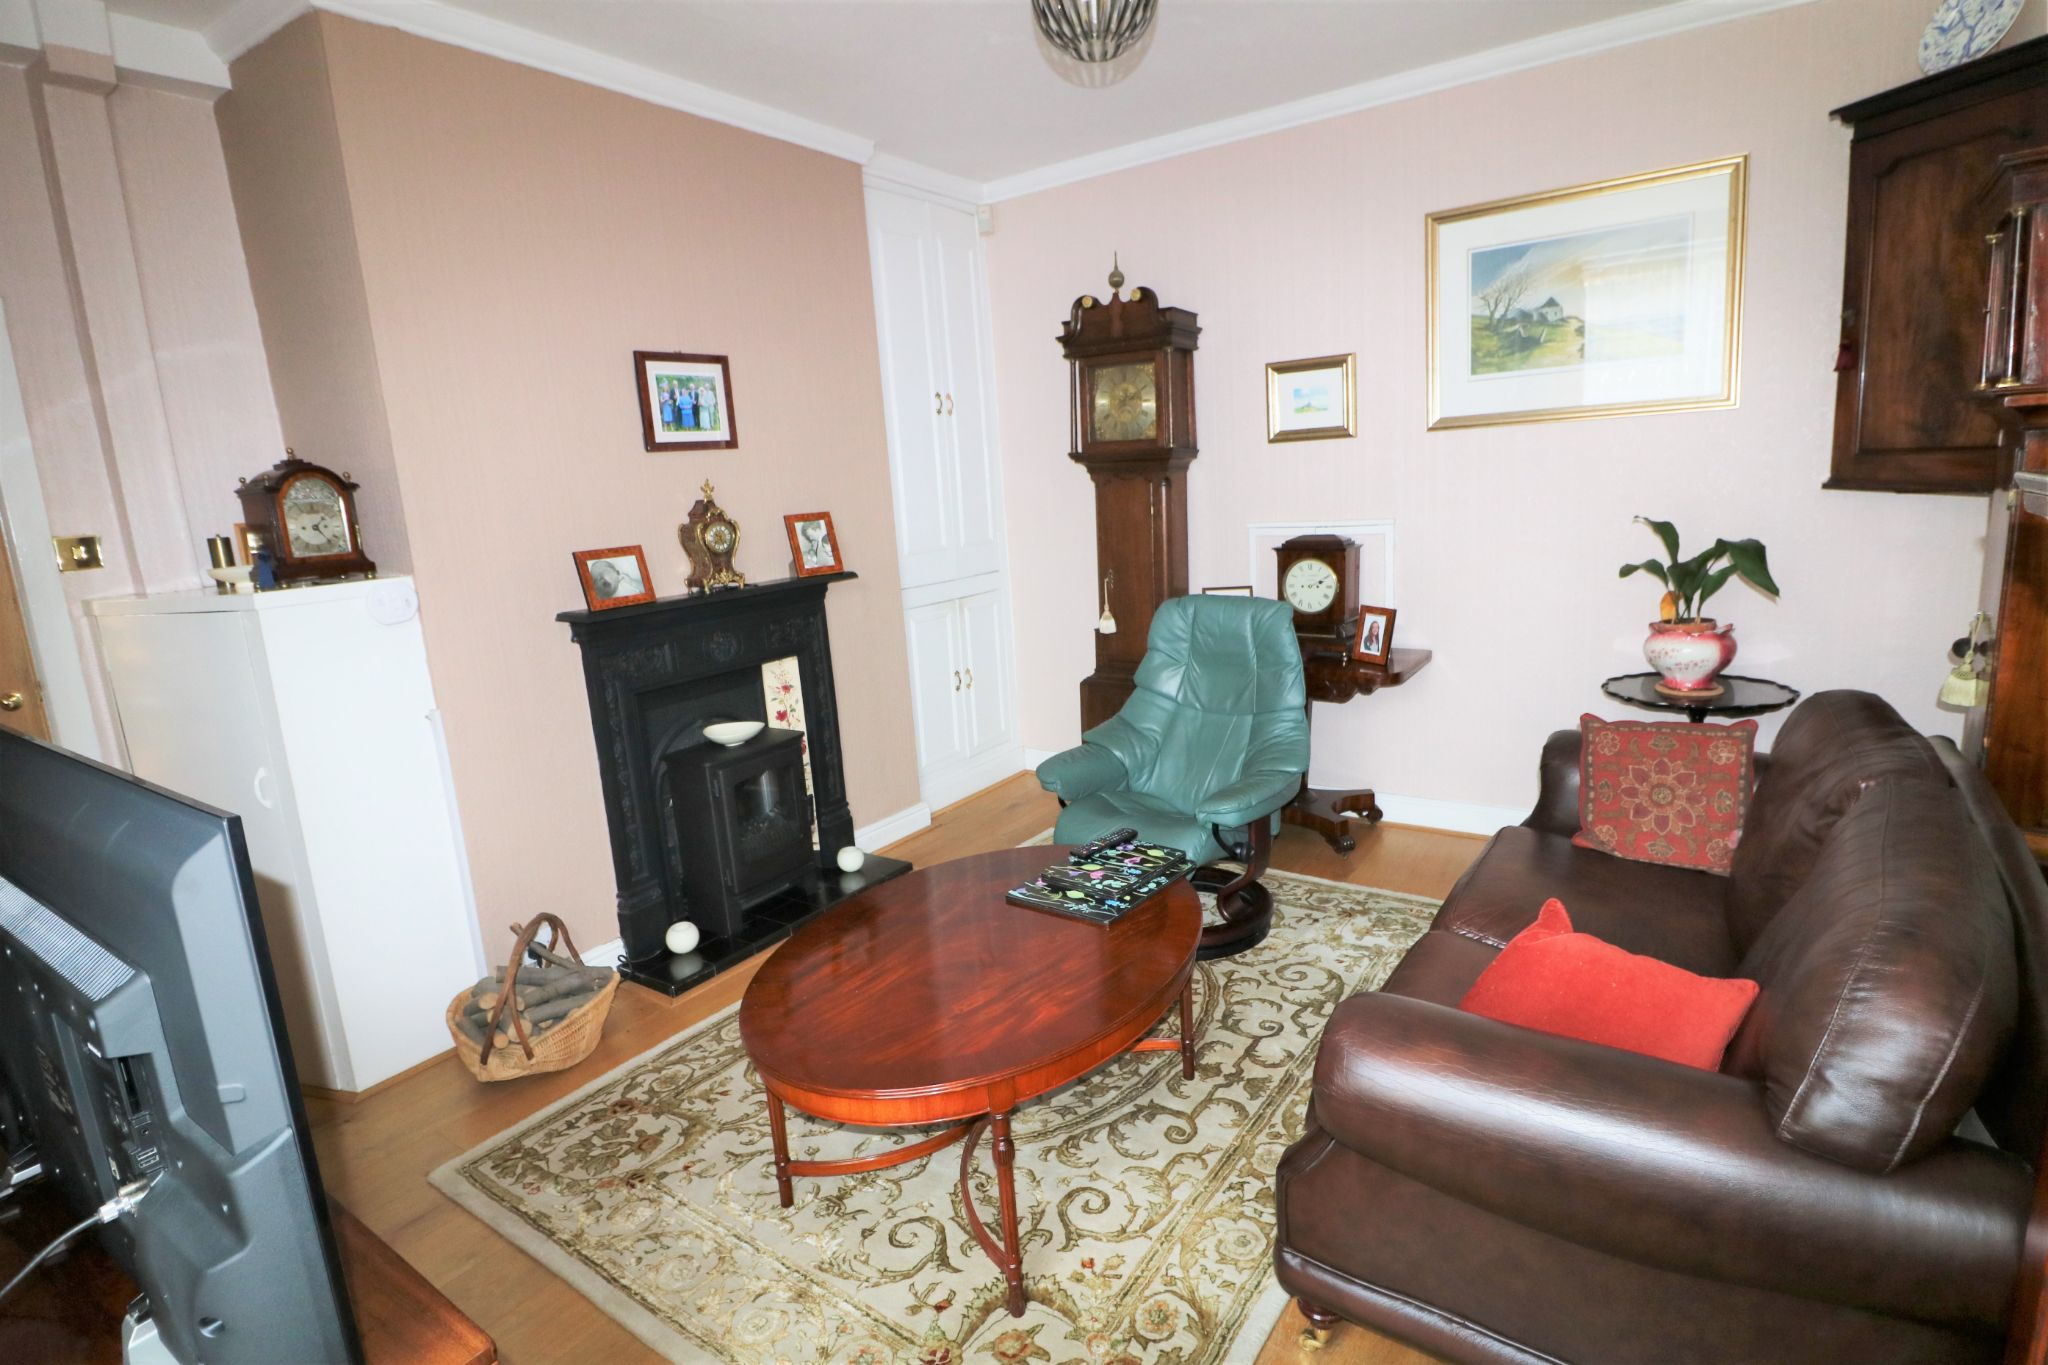 6 Bedroom Semi-detached House For Sale - Photograph 11